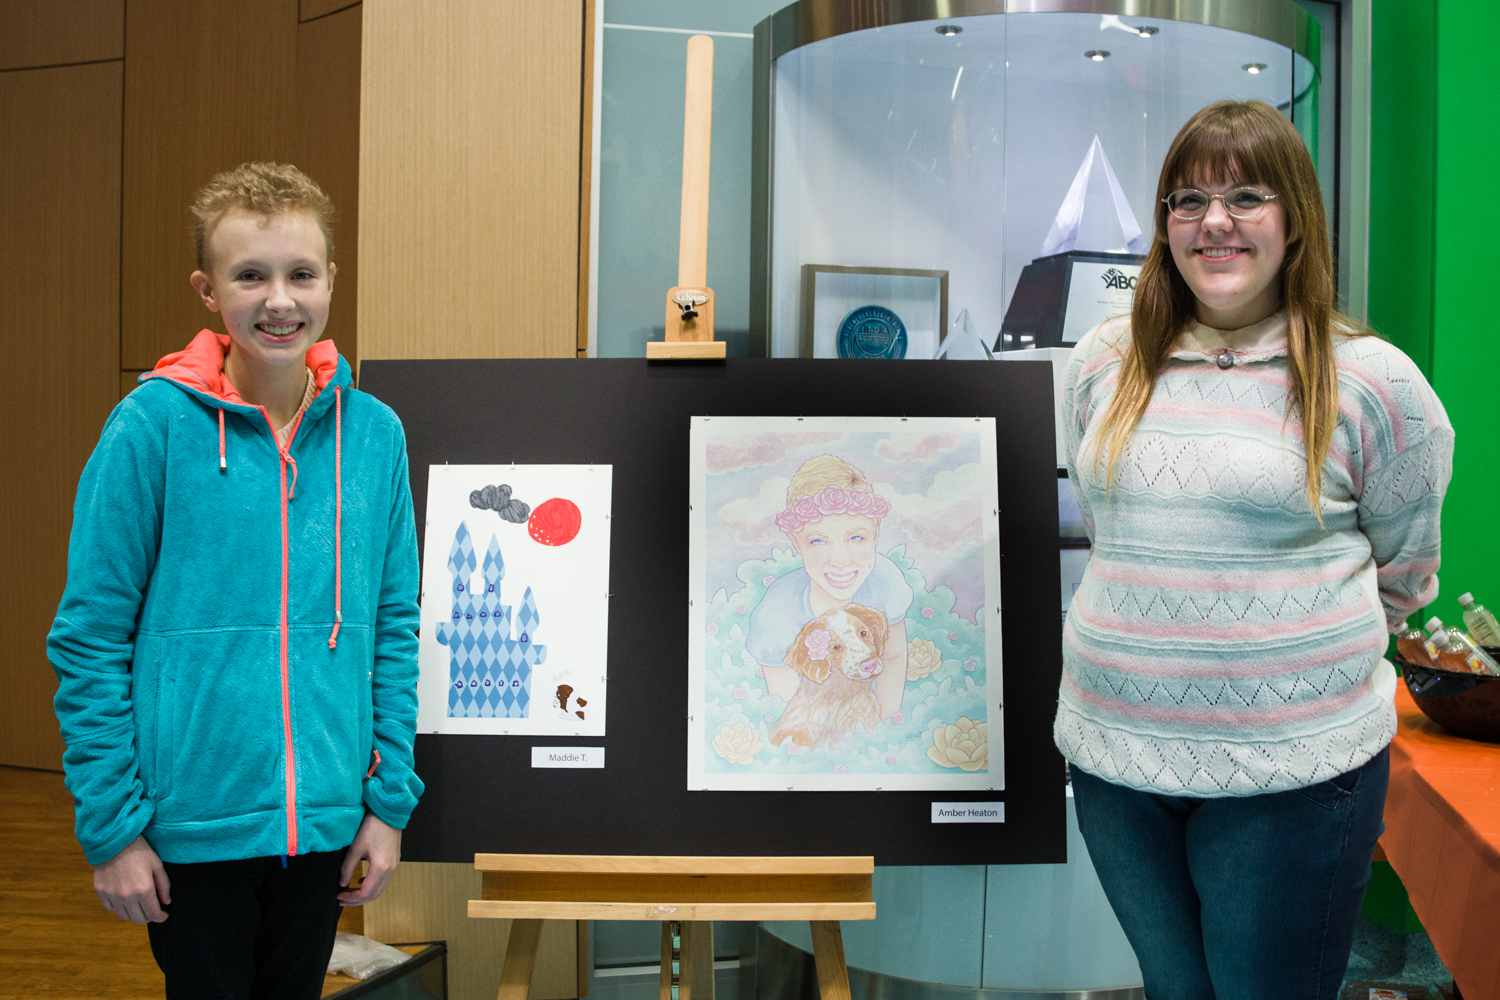 KCAD student Amber Heaton and Maddie, a patient at DeVos Children's Hospital